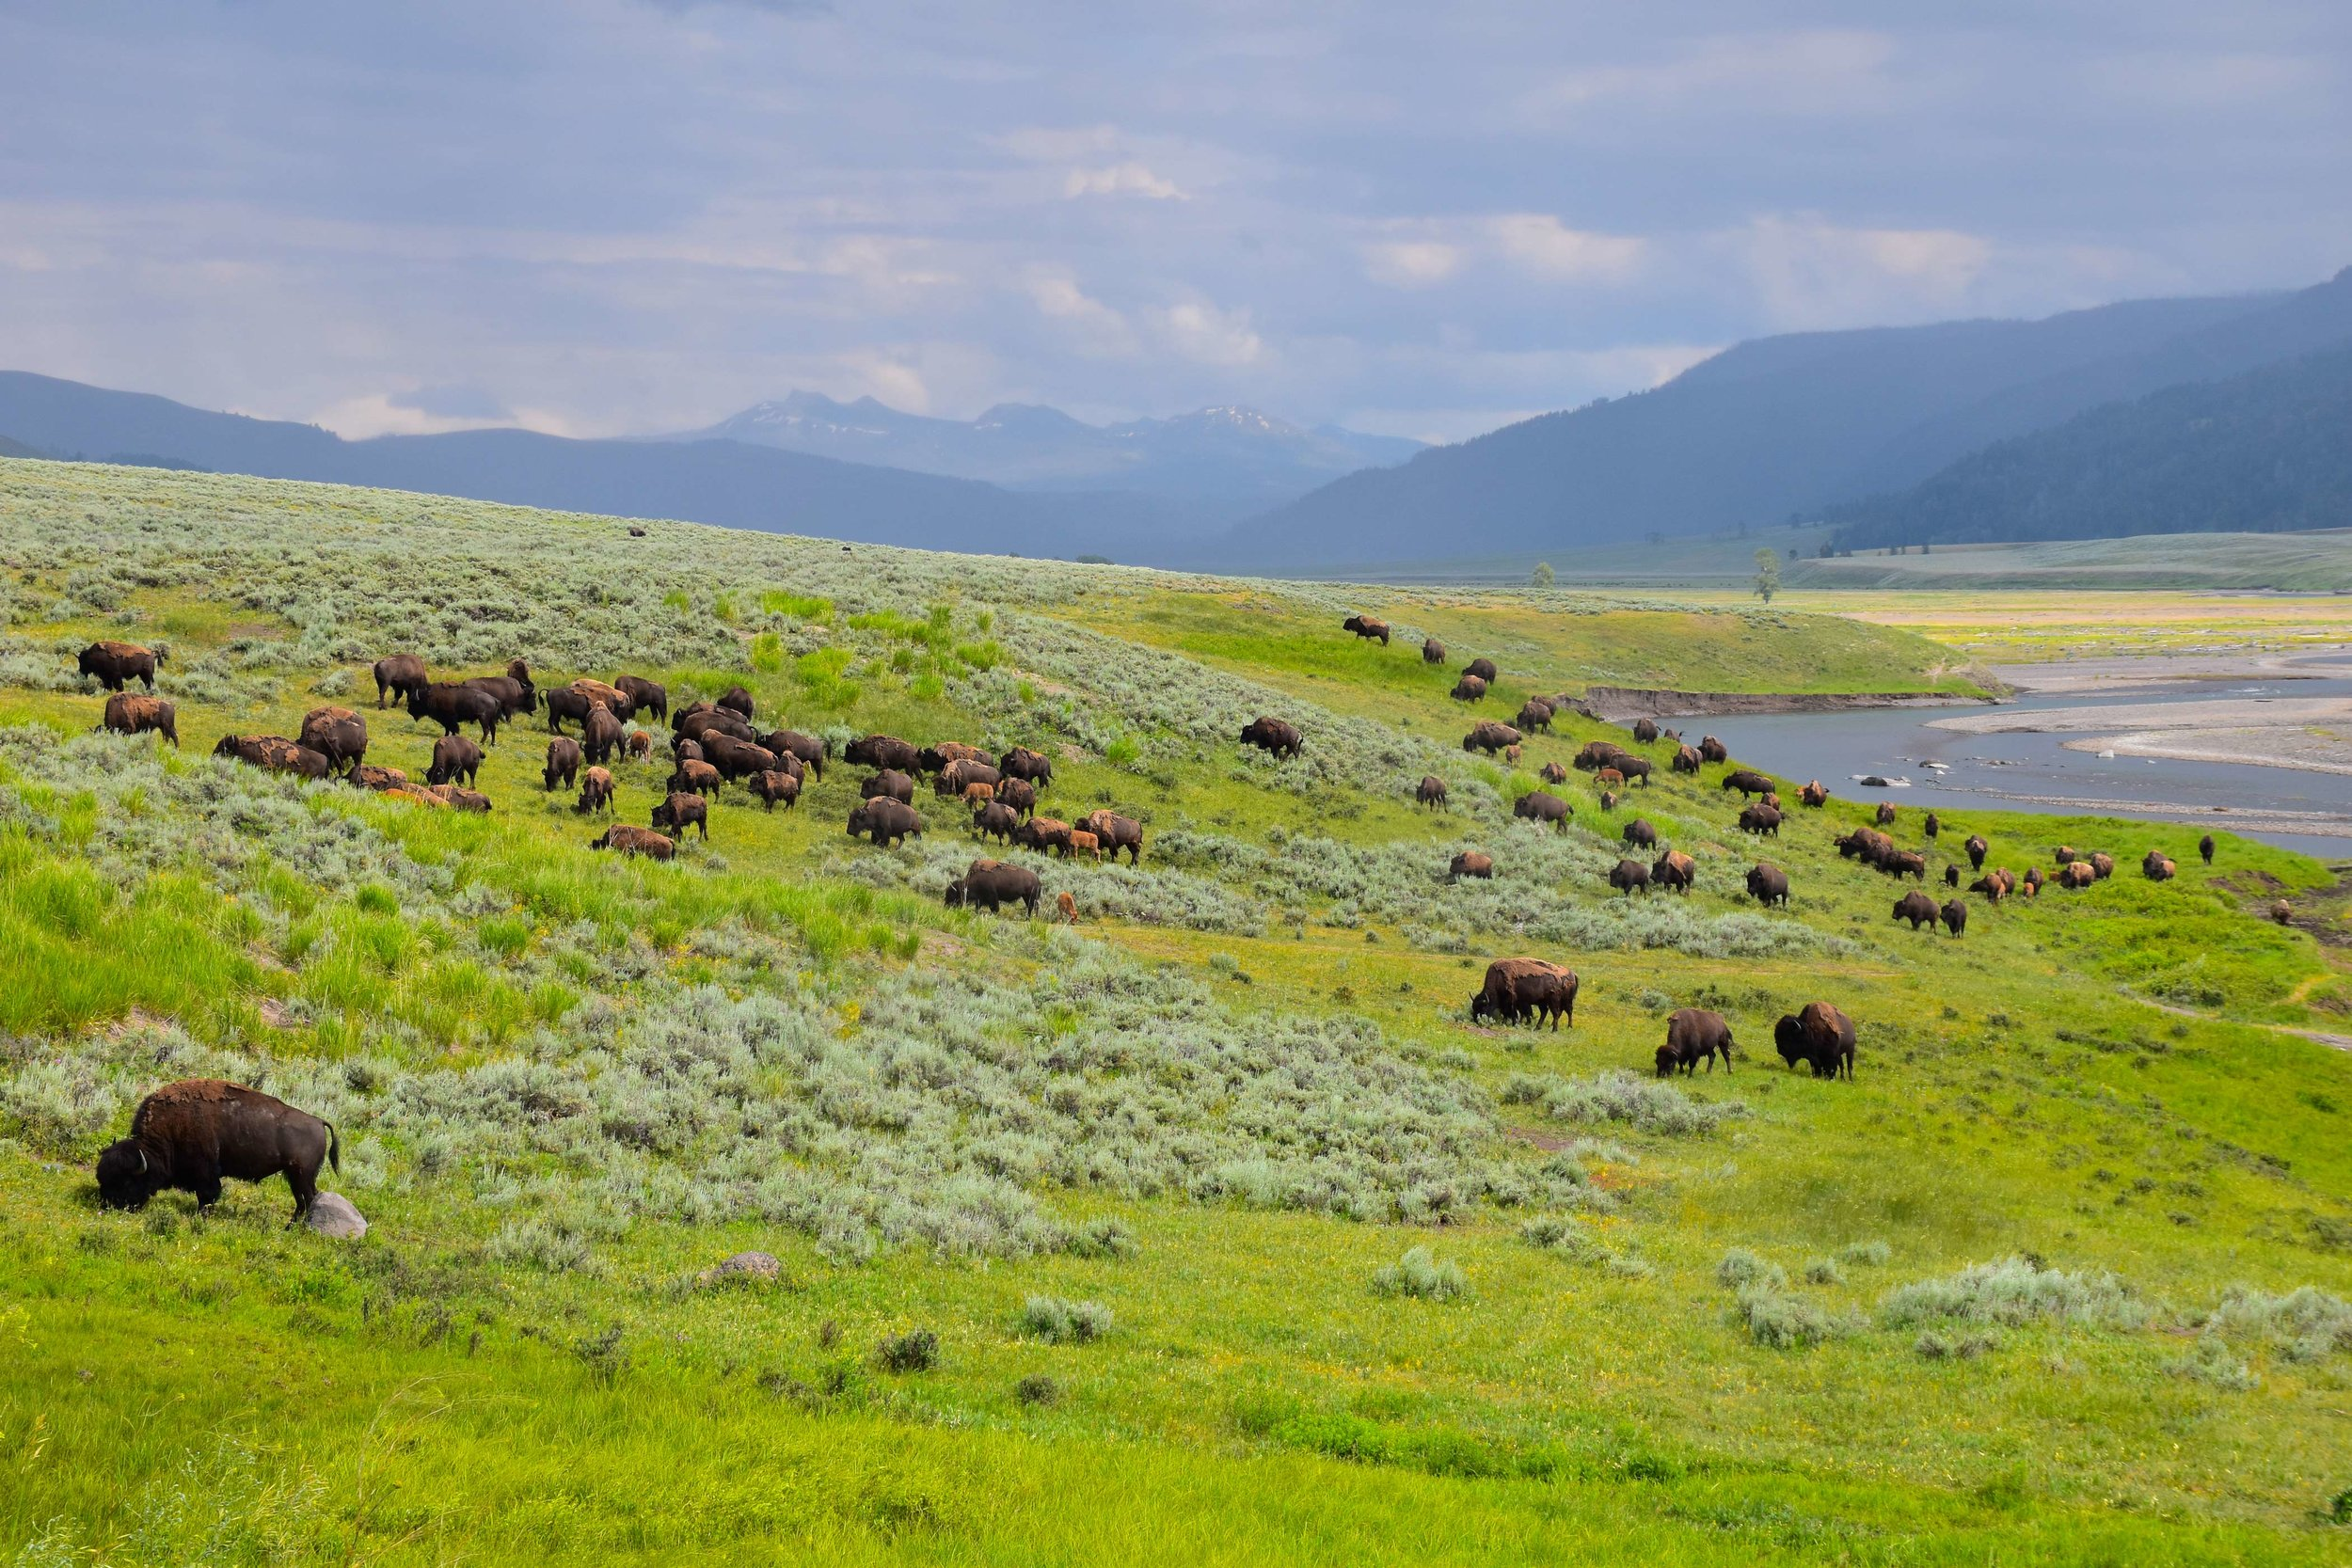 Bison in Yellowstone, photo by Chris Umpierre